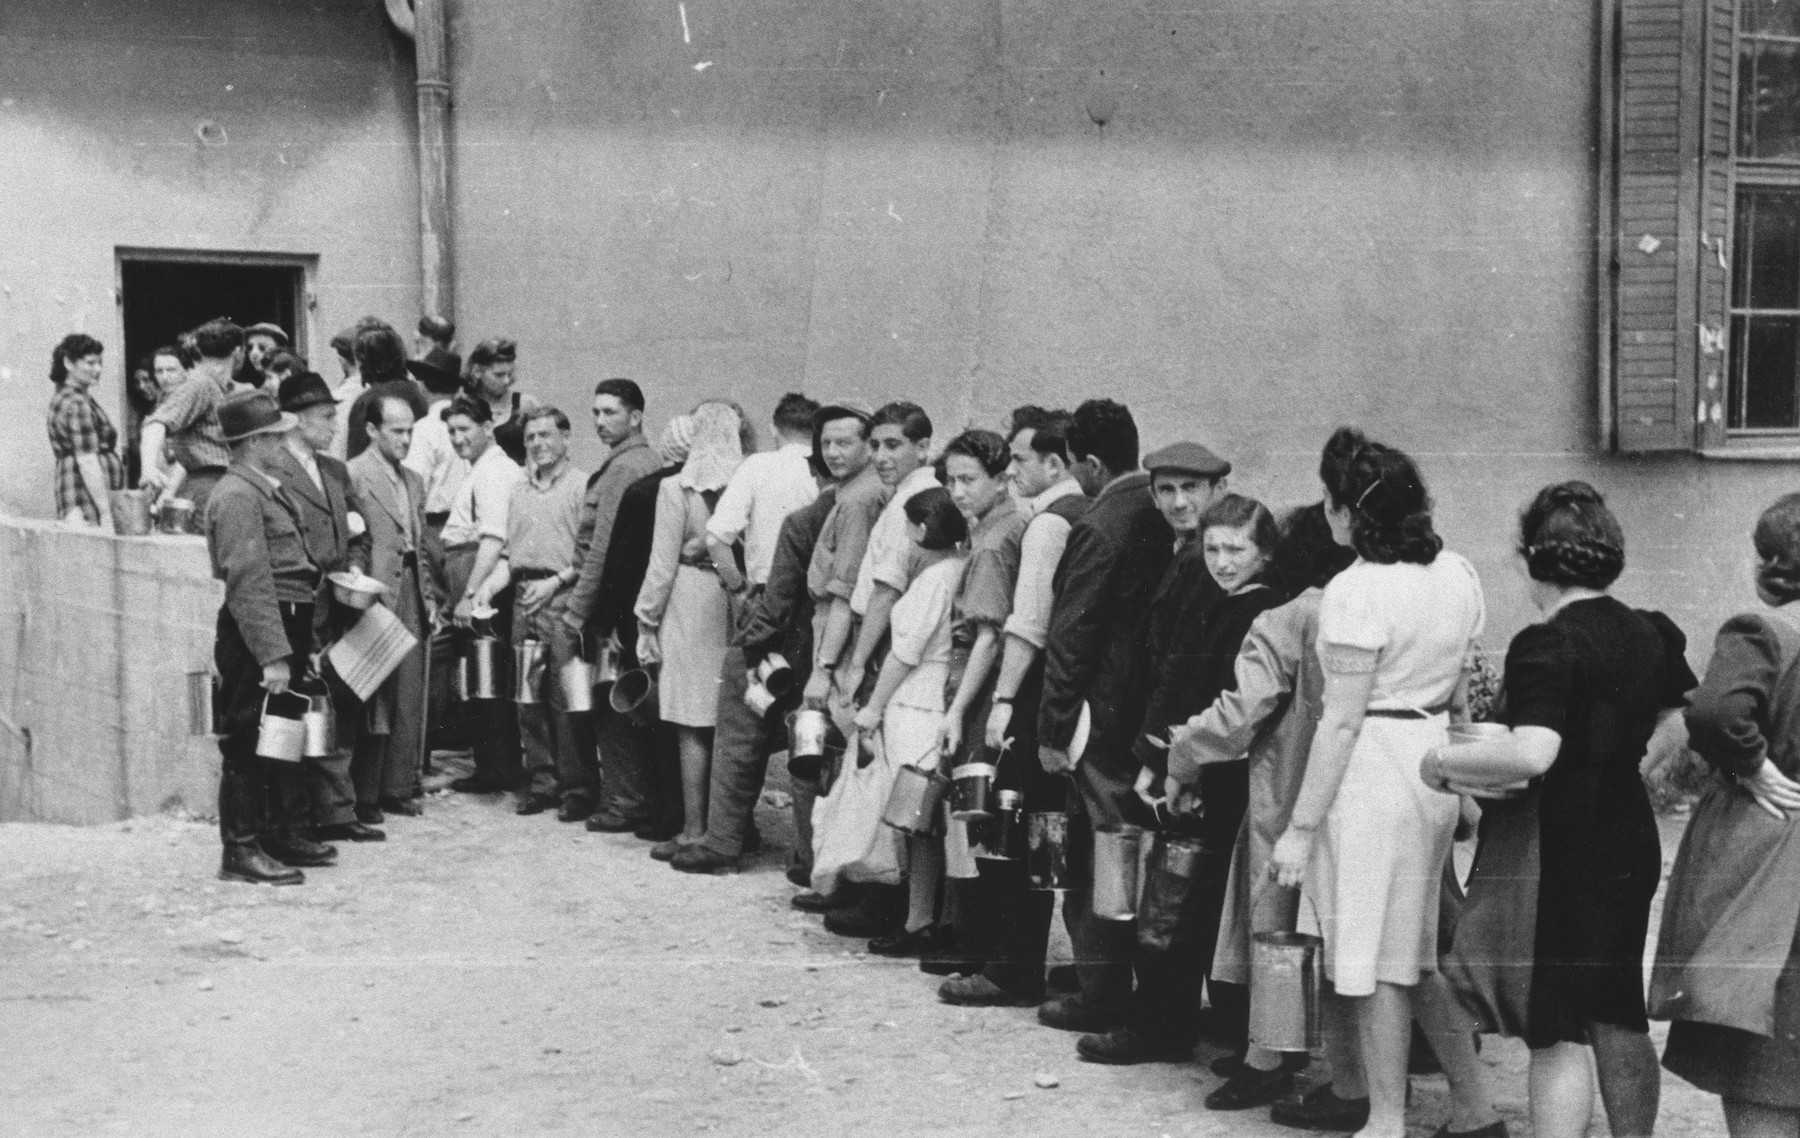 Jewish DPs carrying lunch pails wait in line outside a food distribution center in an unidentified displaced persons camp.